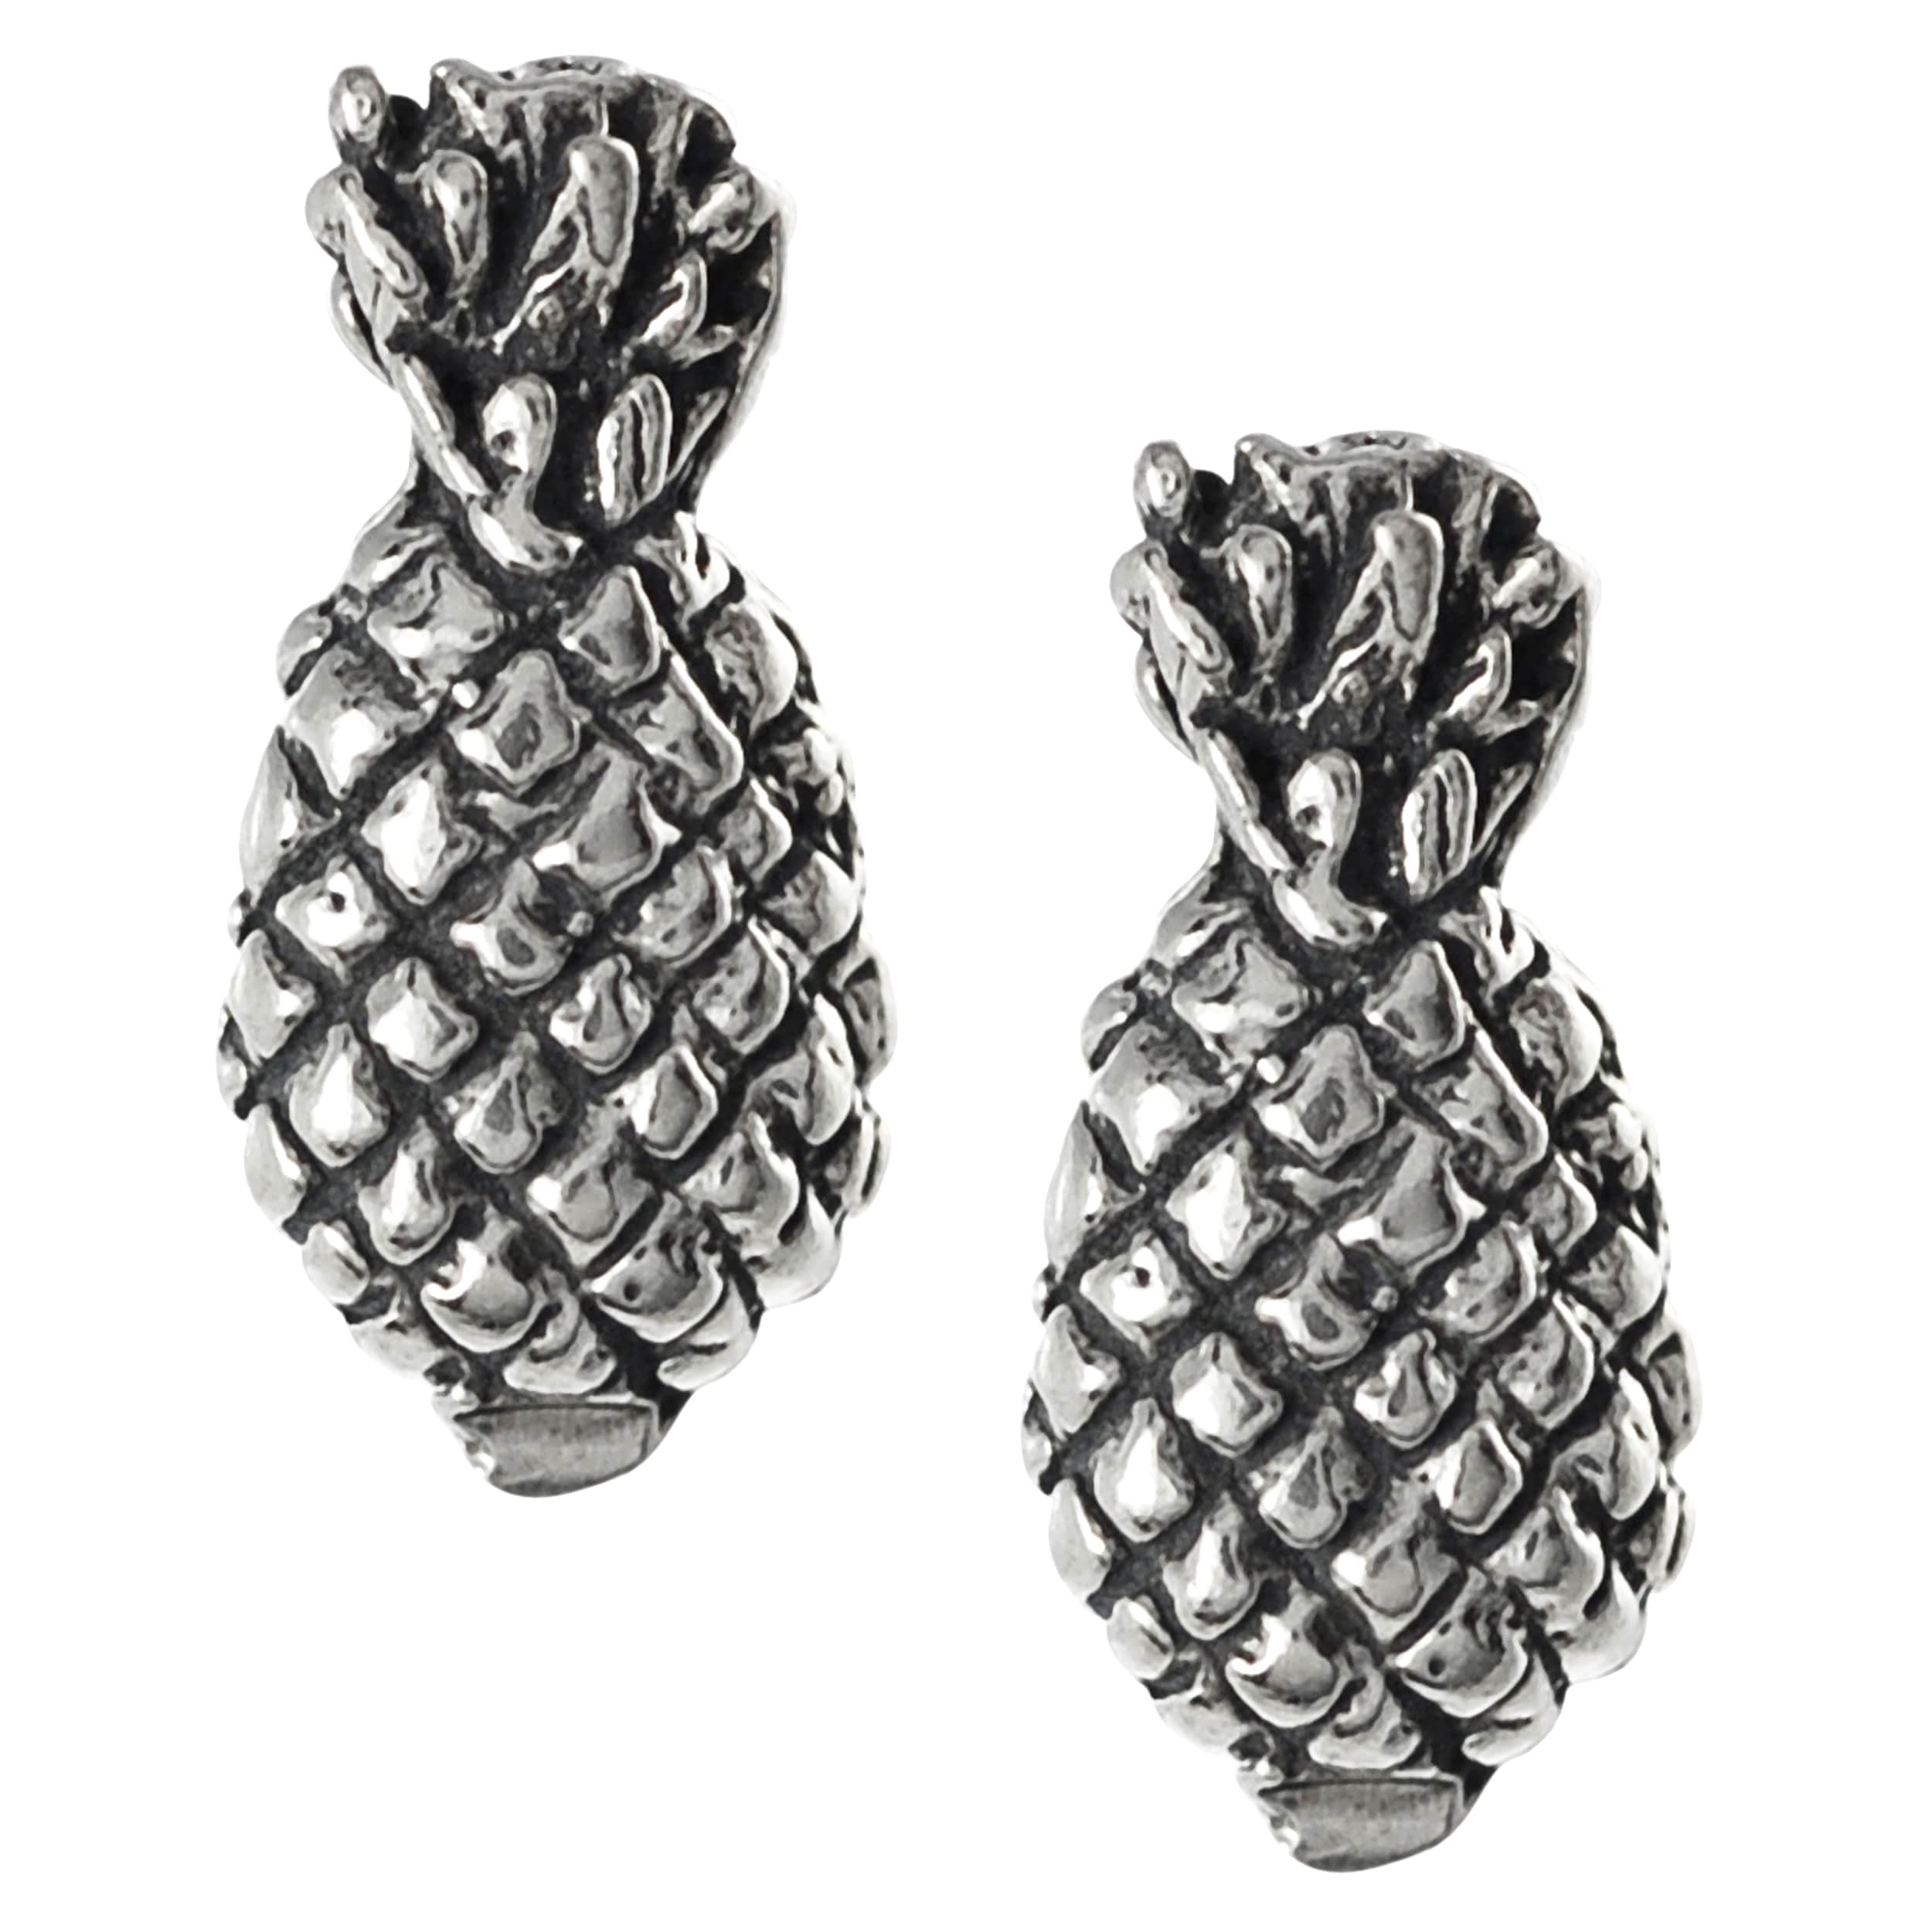 g jewellery collections earrings stud fashion large tropicana pineapple and bs returns delivery